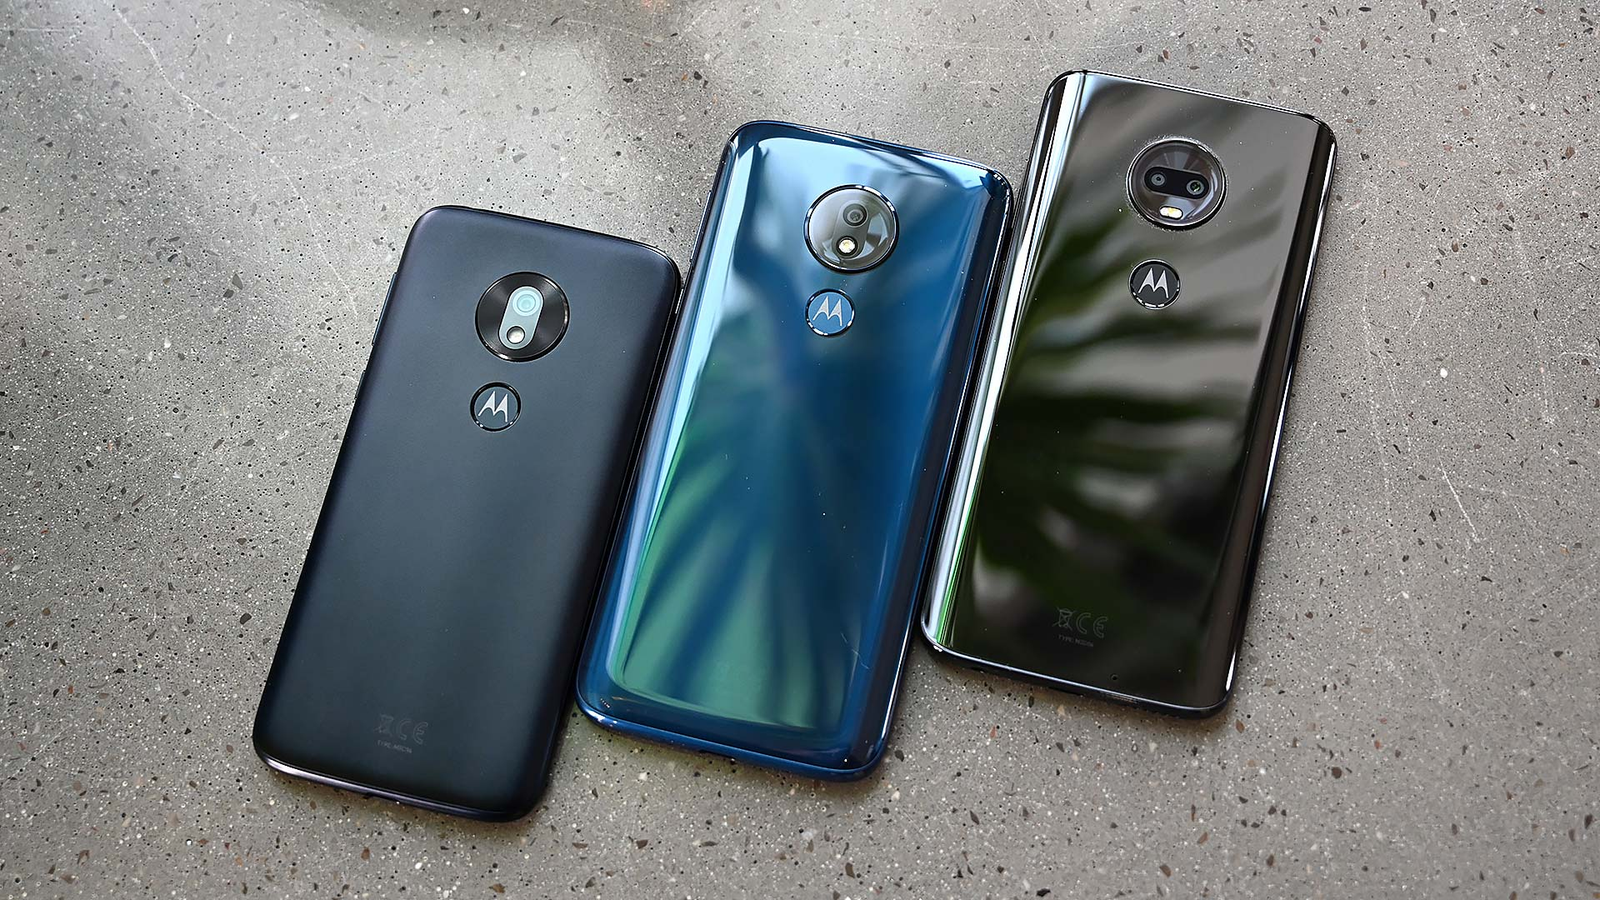 And here's the whole G7 family together. From left to right we have the G7 Play, the G7 Power, and the standard G7.